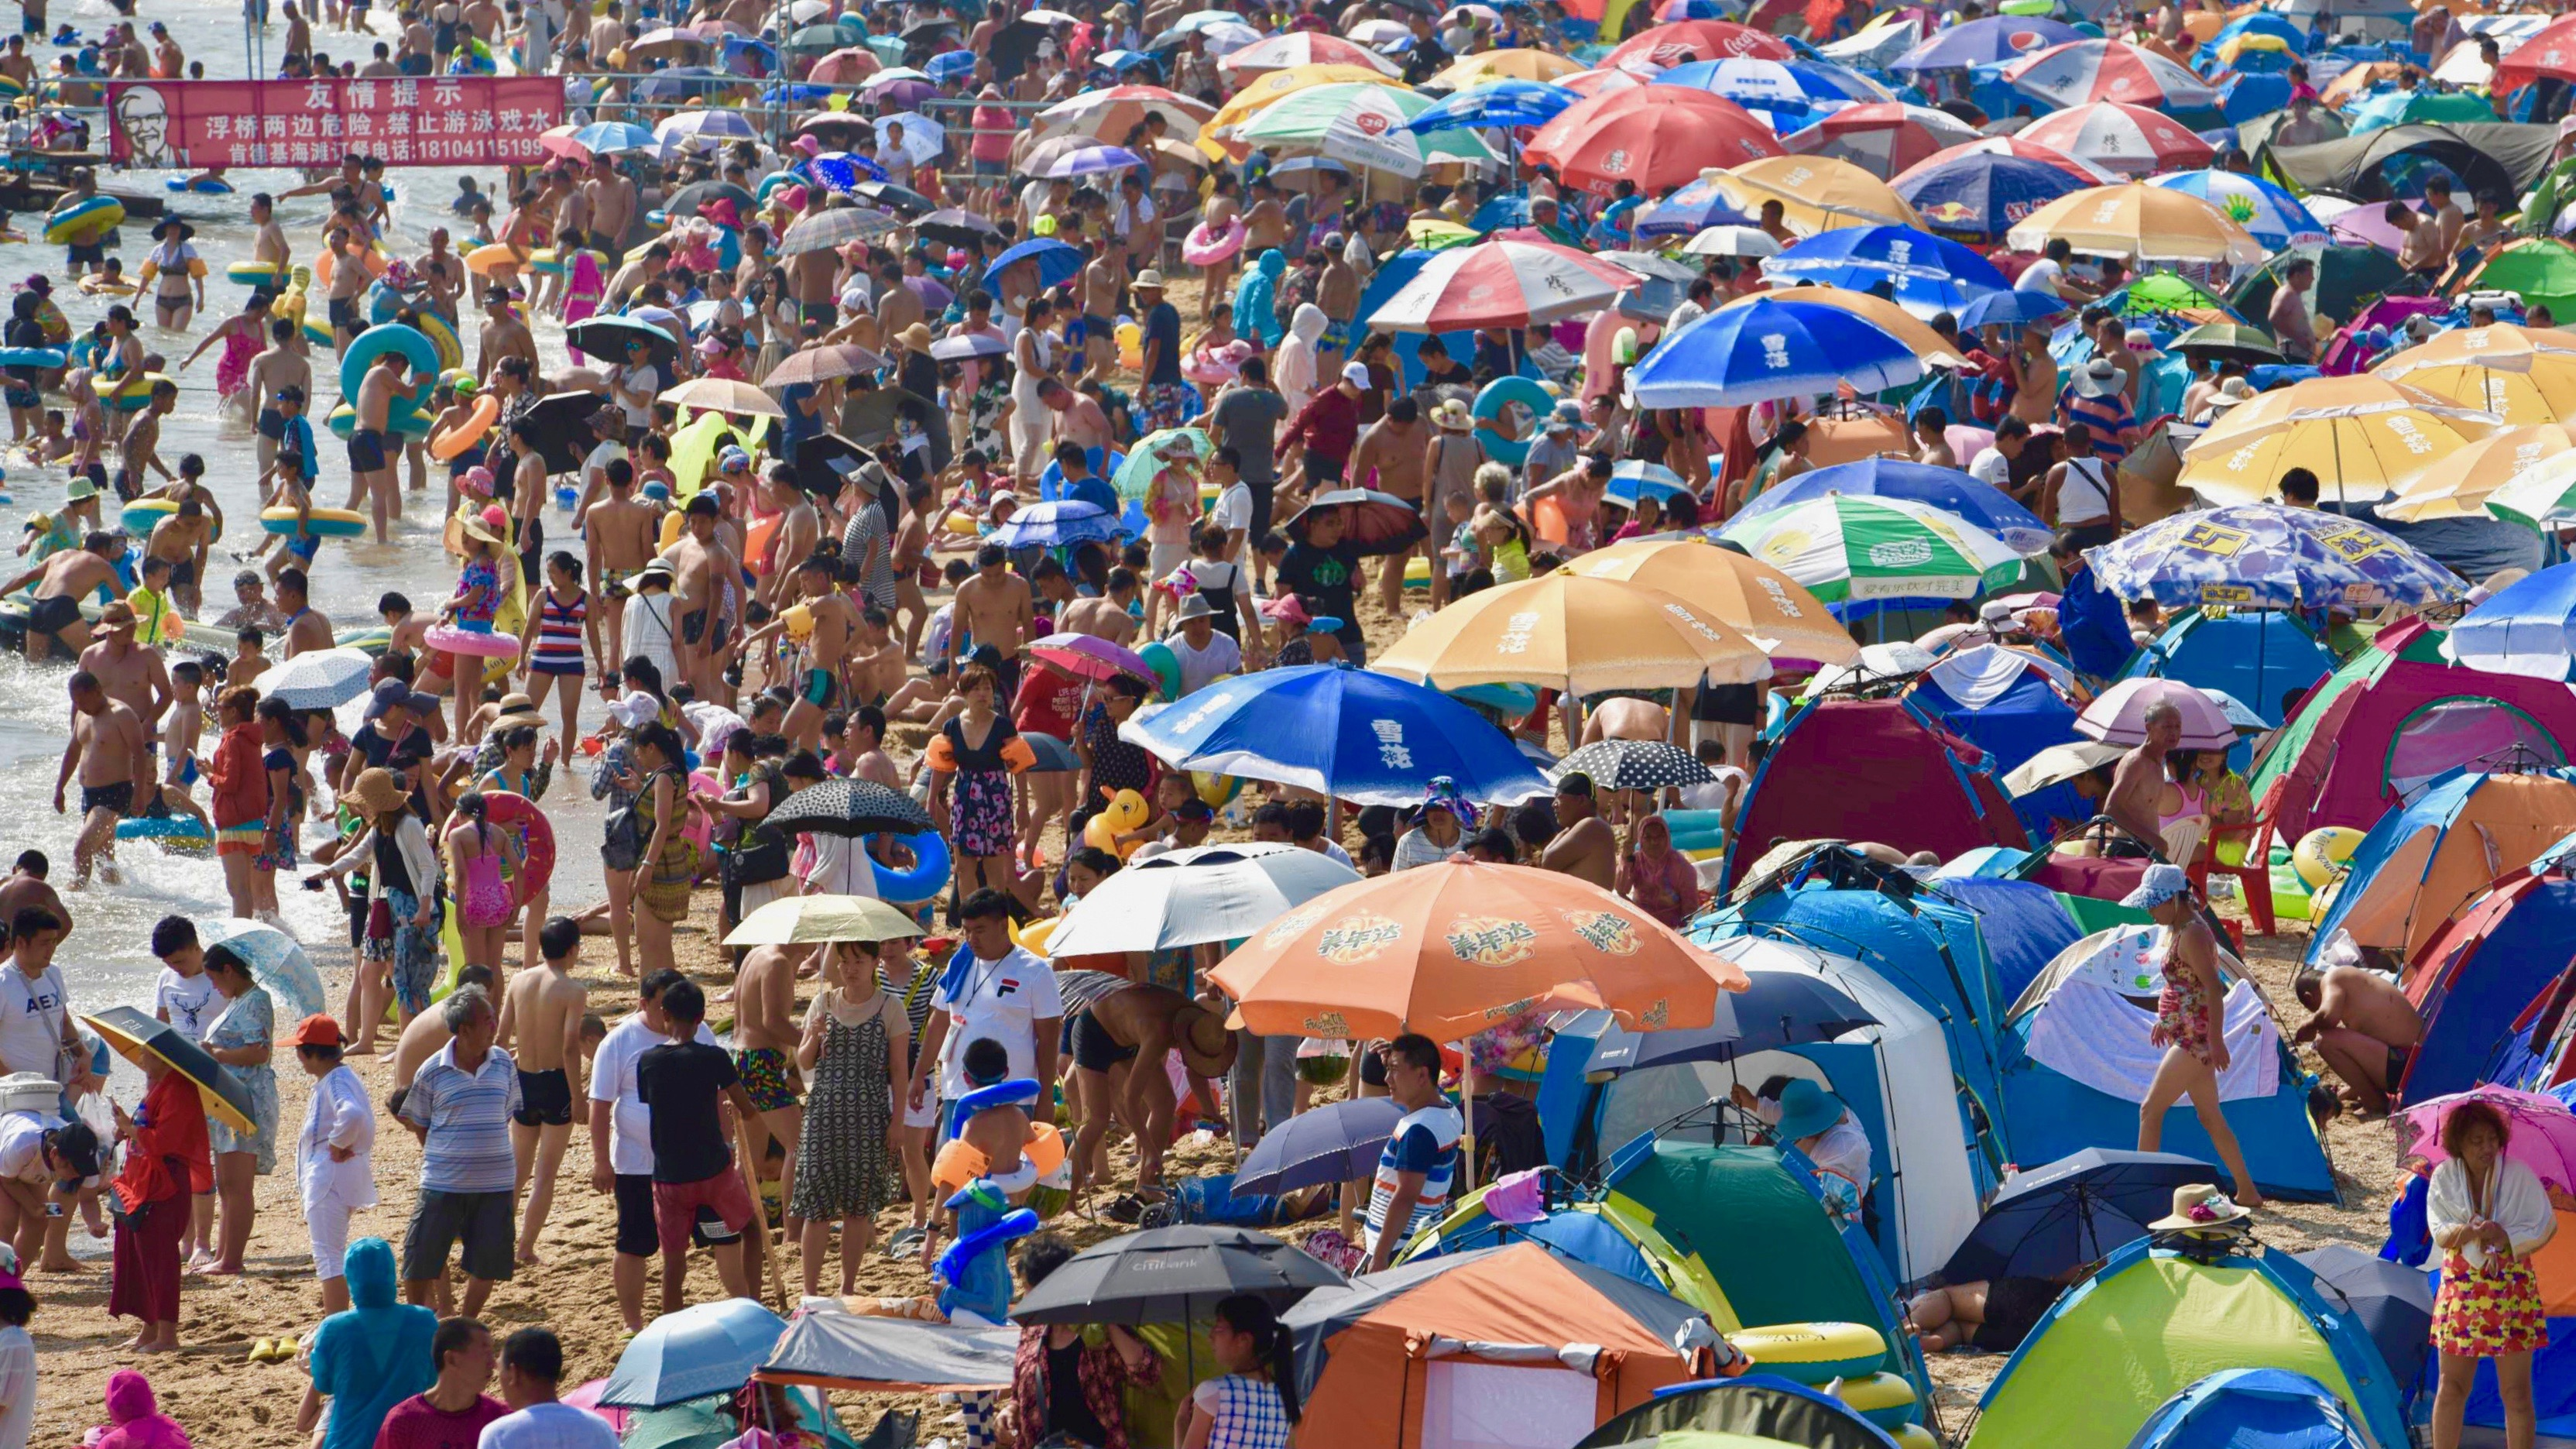 A day at the beach in Dalian, Liaoning province, China.